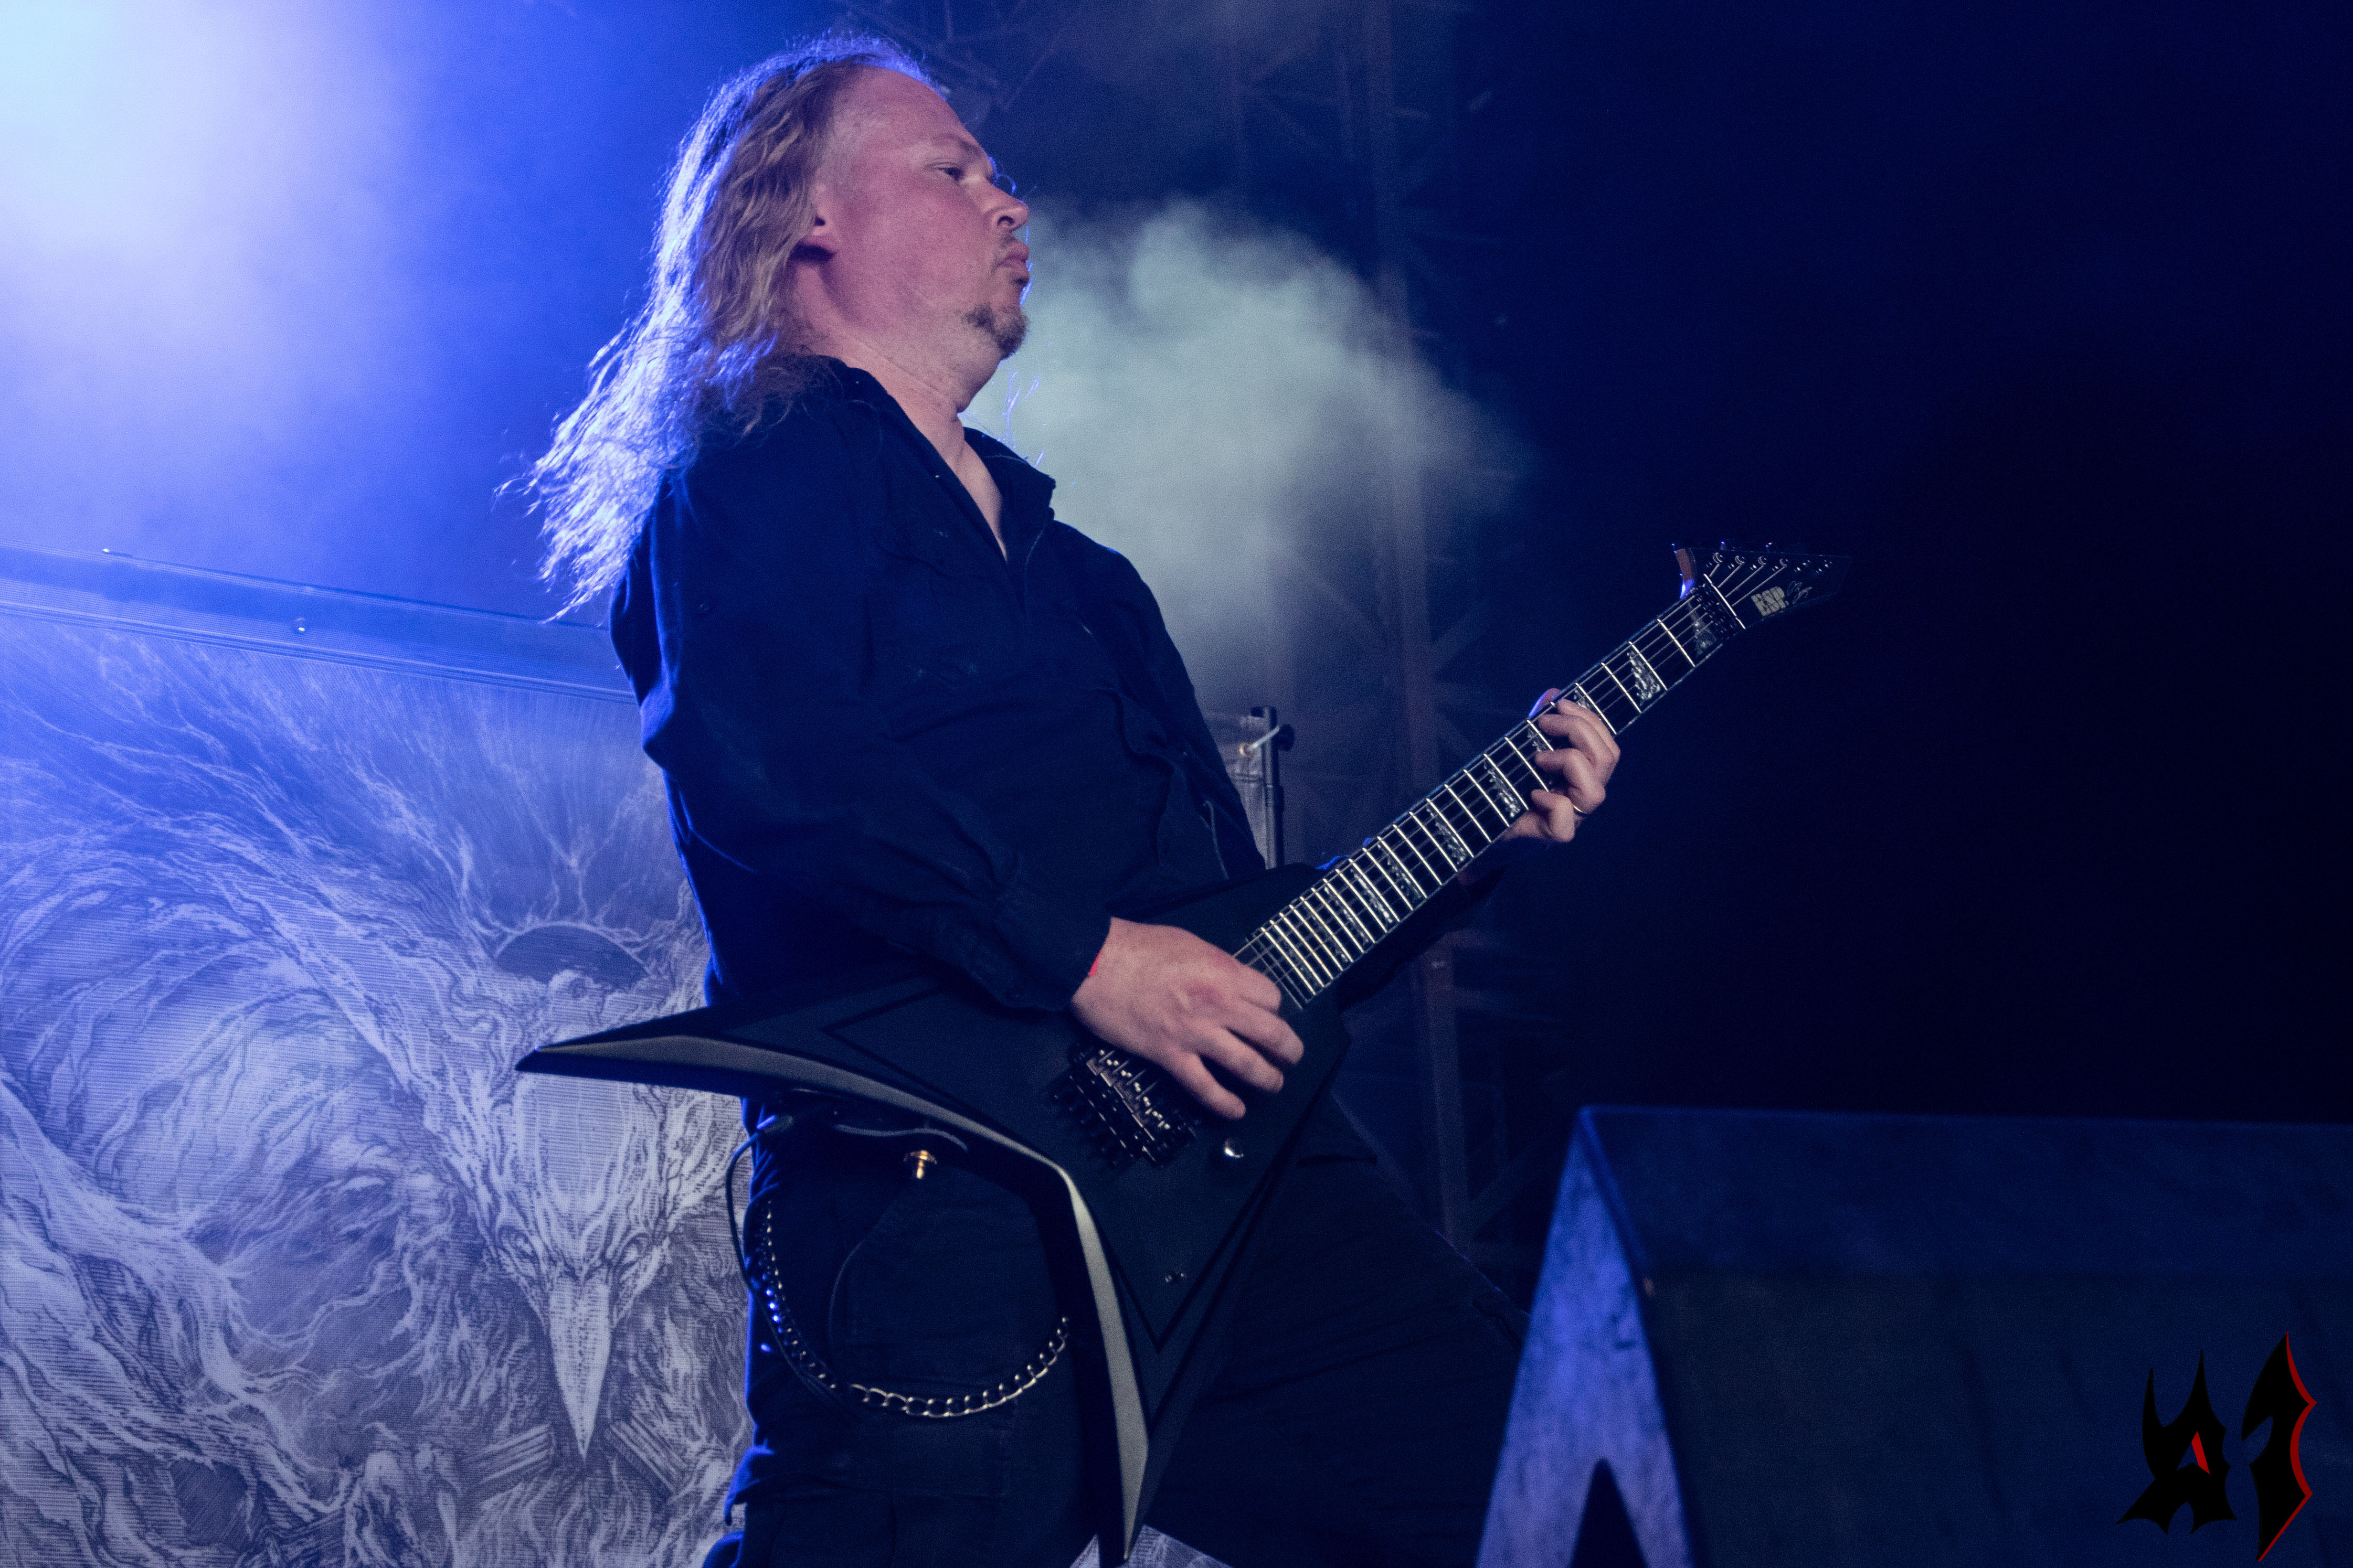 Hellfest - Immolation - 10